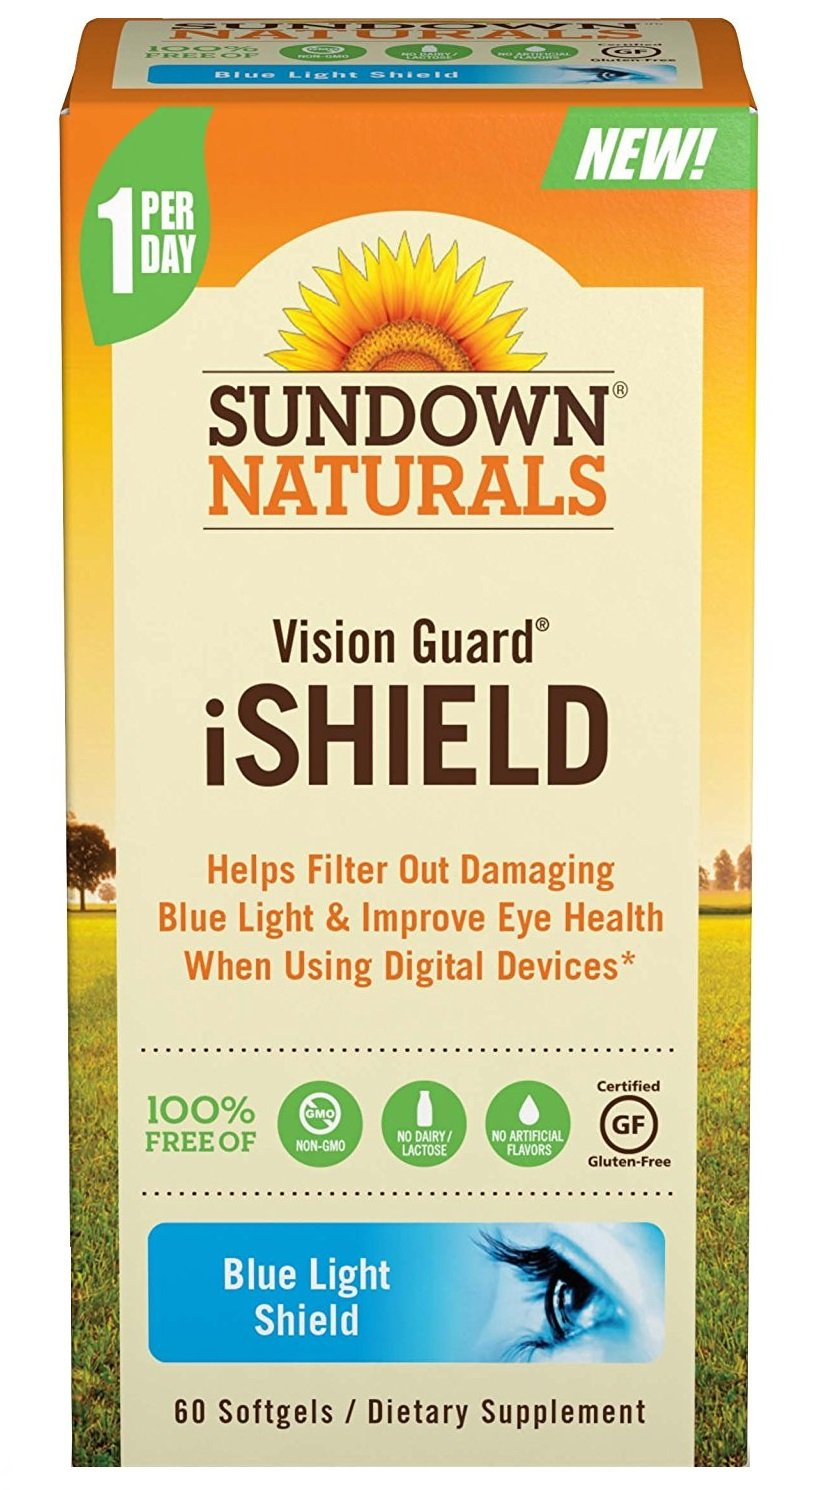 Sundown Naturals Vision Guard iShield Softgels, 60 Count (Pack of 5)